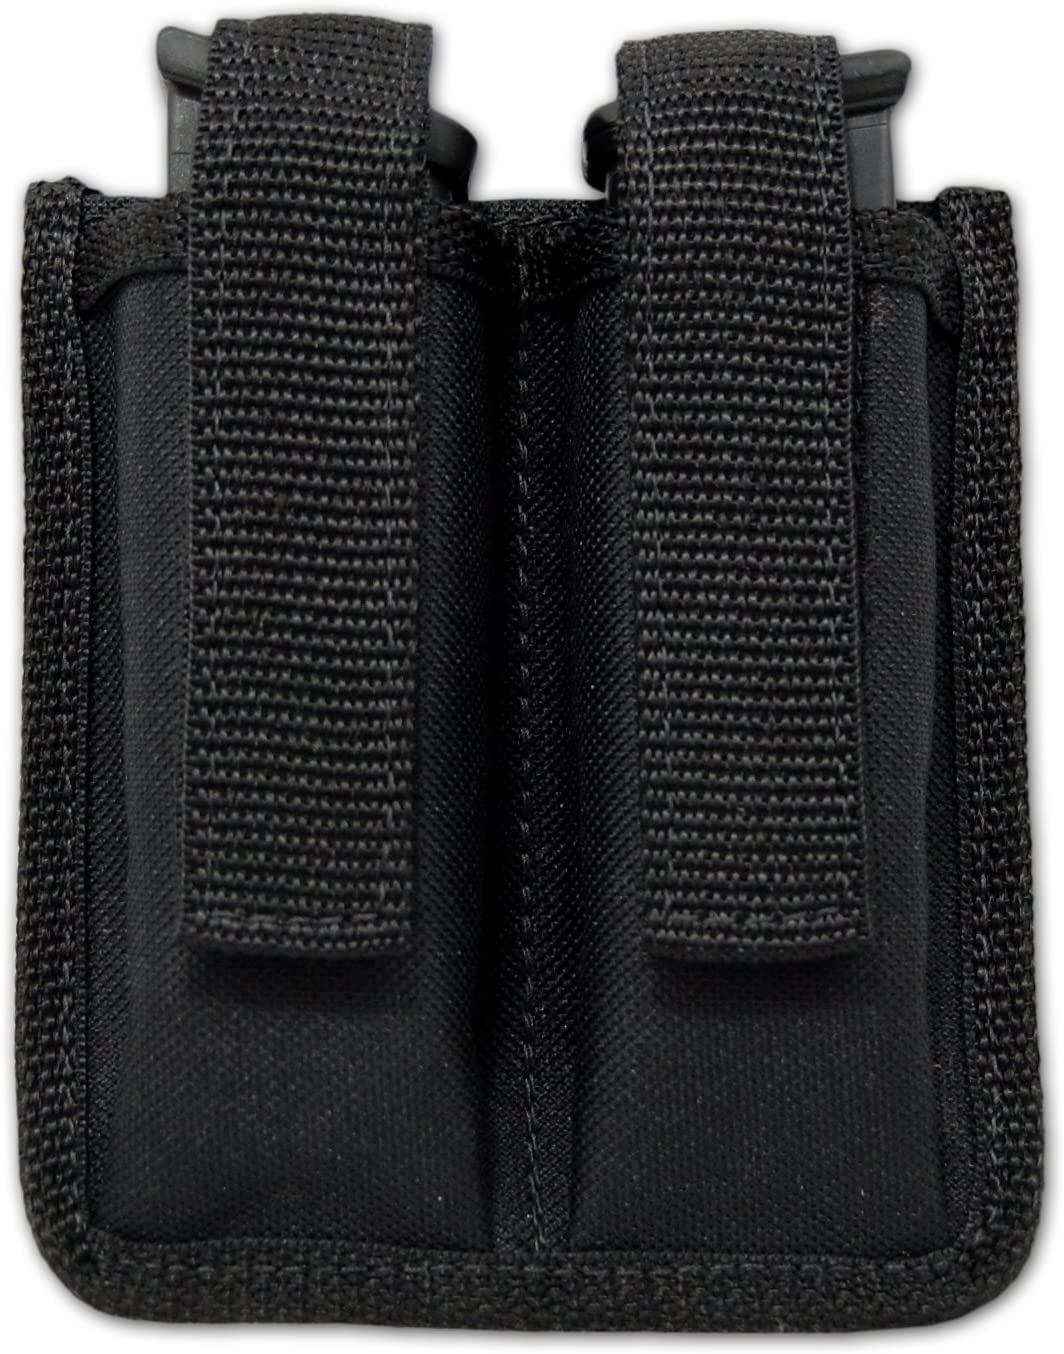 Ranking TOP15 Barsony Latest item New Double Magazine Pouch for 4 Compact 9mm Sub-Compact